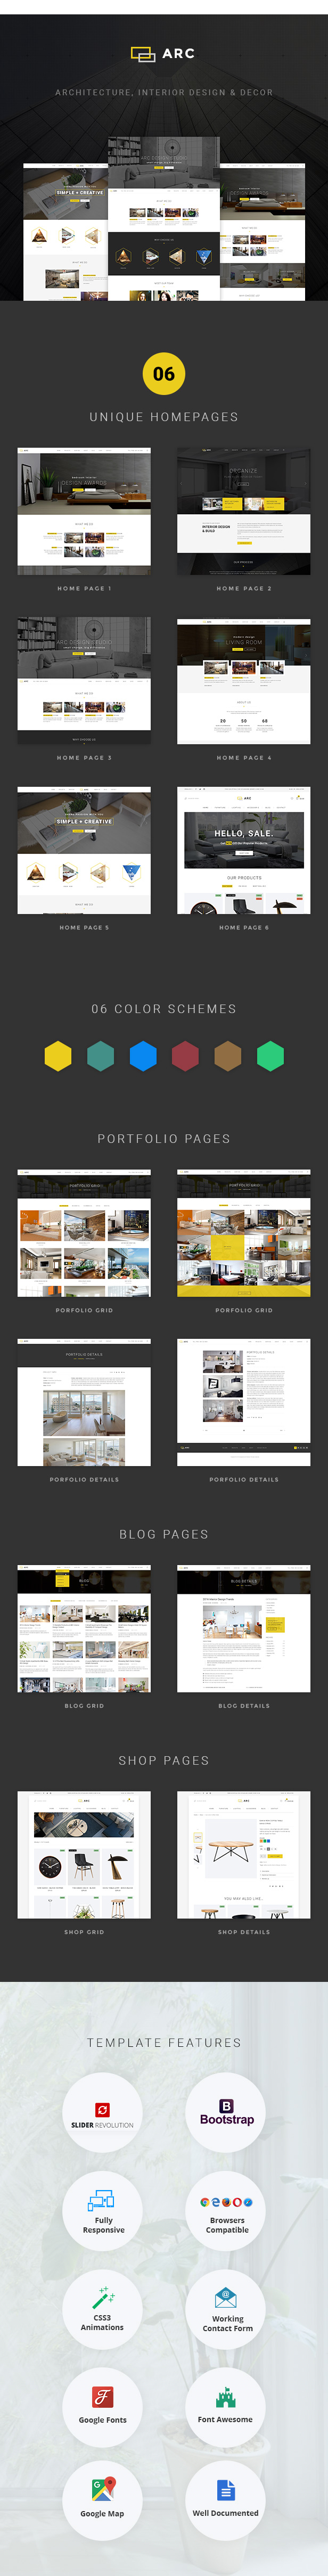 ARC - Interior Design, Decor, Architecture Business Template by ...